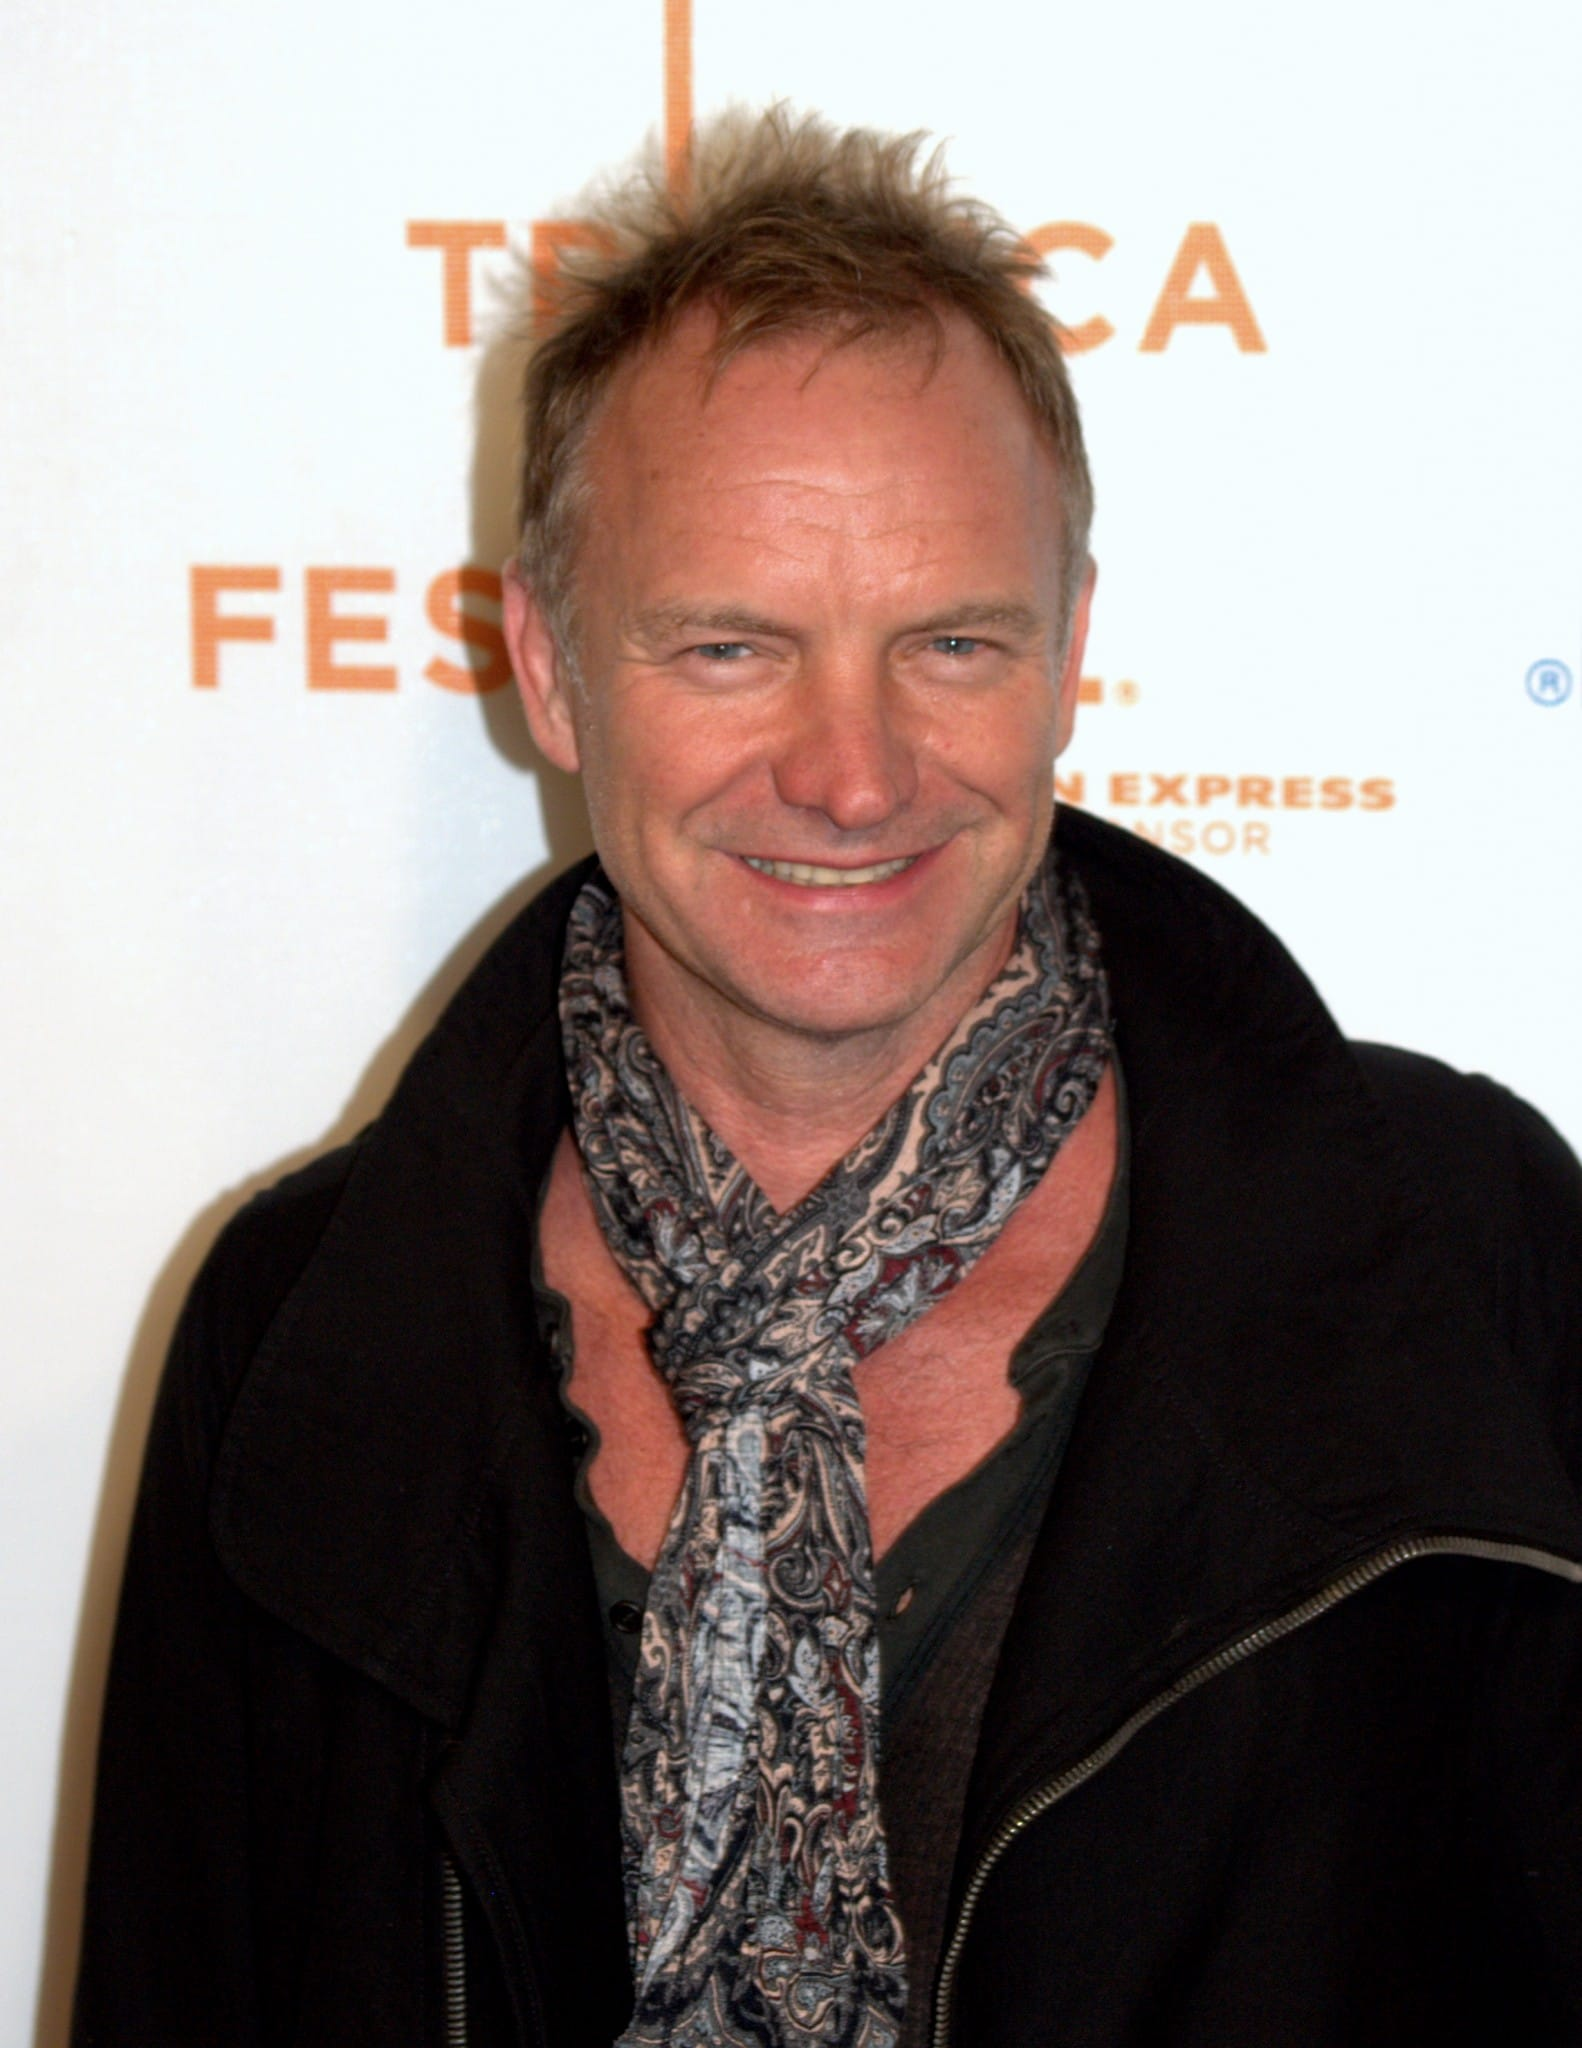 sting_2009_portrait